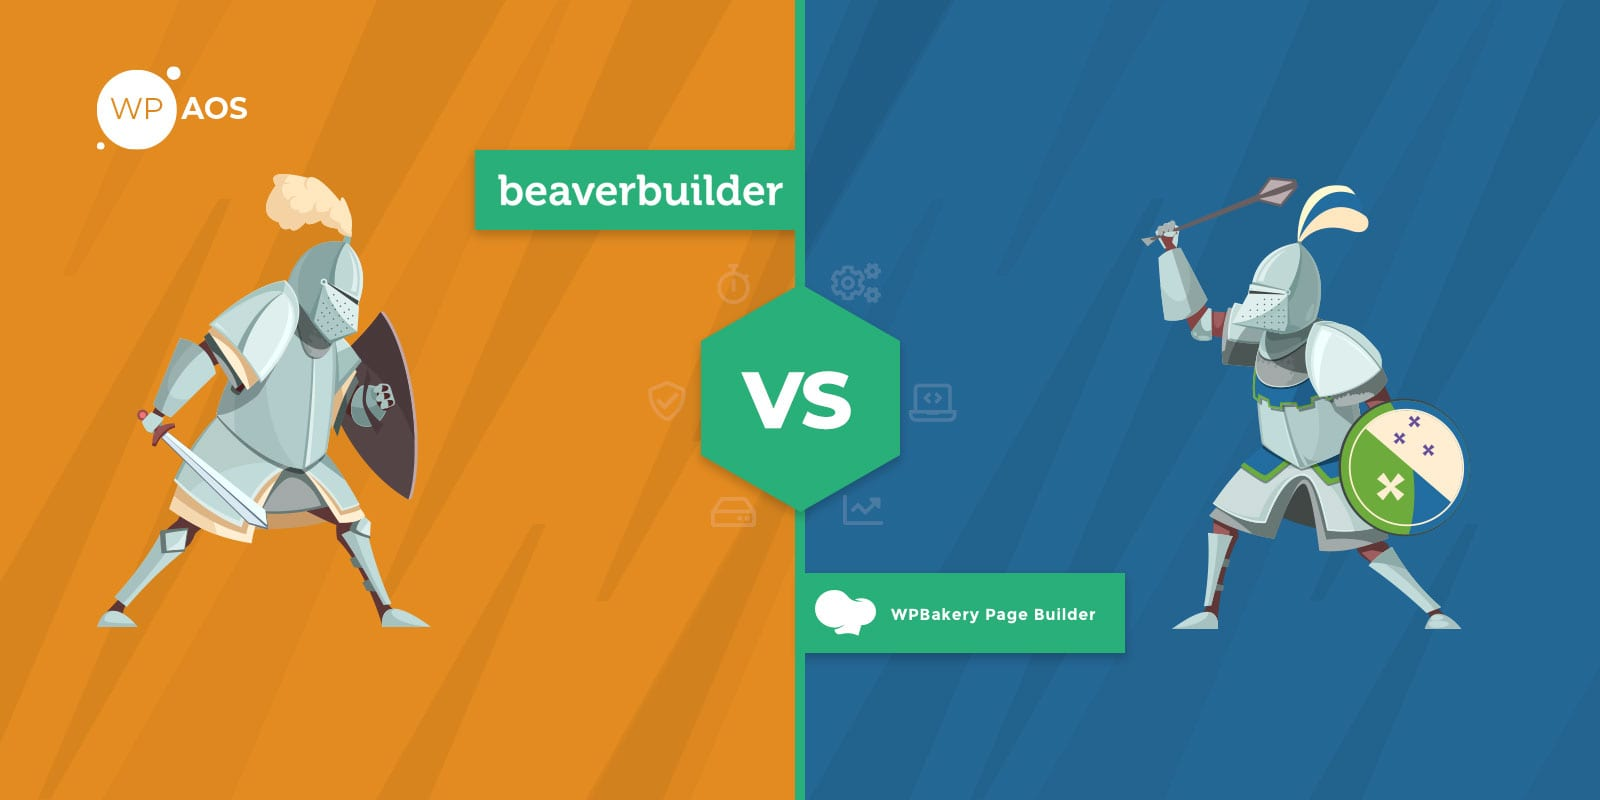 Beaver Builder VS WPBakery, WordPress Page Builder, wpaos